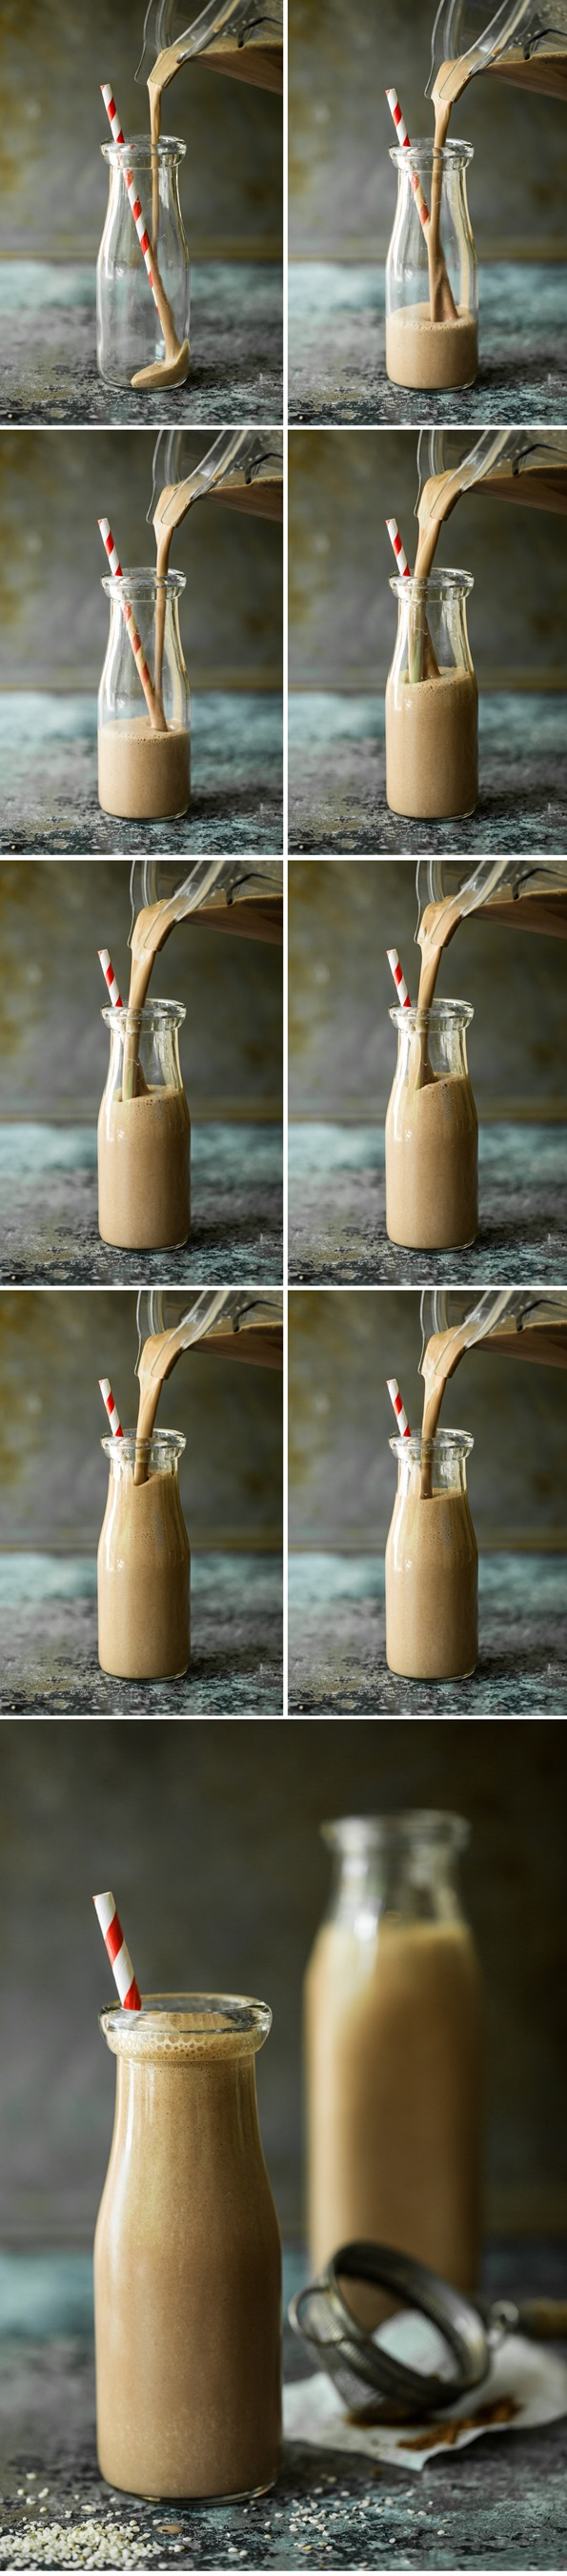 chocolathempsmoothie   Creamy Chocolate Hemp Smoothie for Two